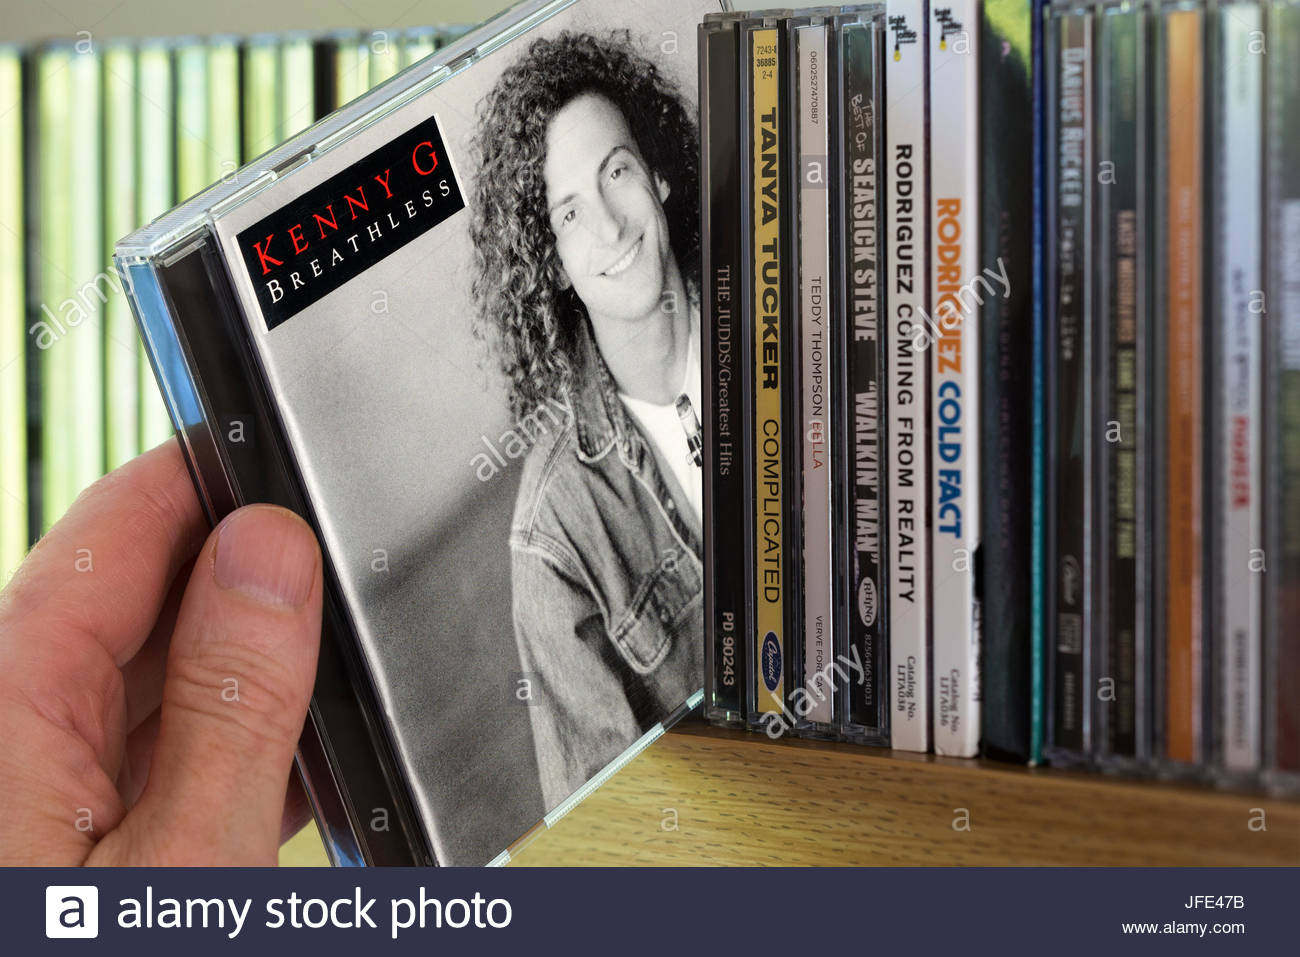 Breathless, Kenny G CD being chosen from a shelf of other CD's, Dorset, England - Stock Image